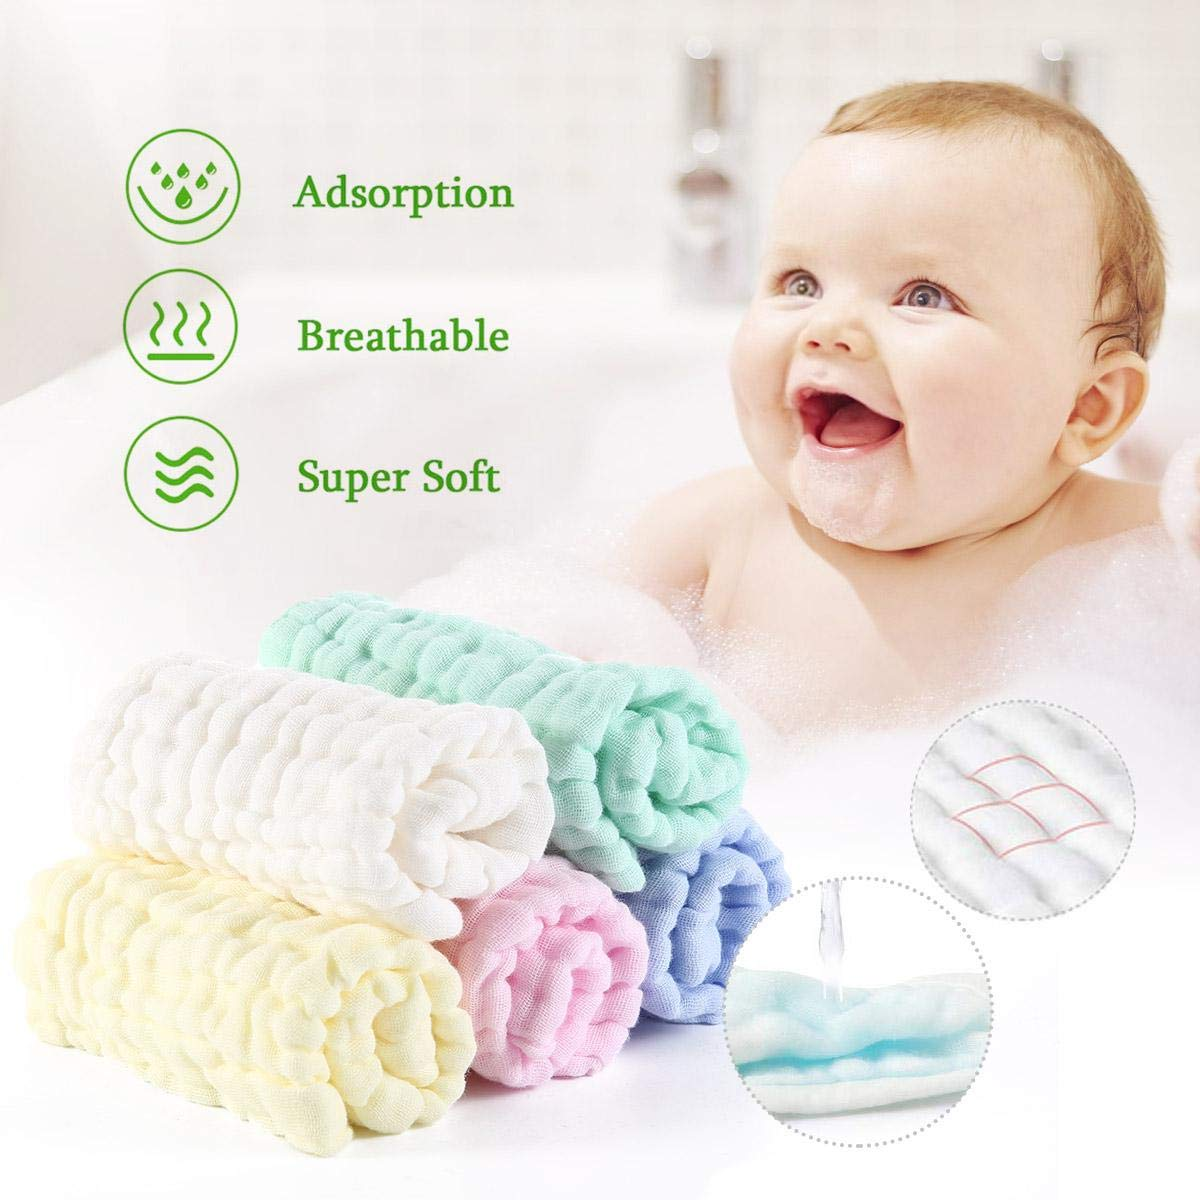 Soft Fluffy Breathable Newborn Wash Face Towel for Infant Kids Sensitive//Allergic Skin Baby Muslin Washcloths 5 Pack 6 Layer 100/% Natural Cotton Baby Wipes 12x12 inches Pure White